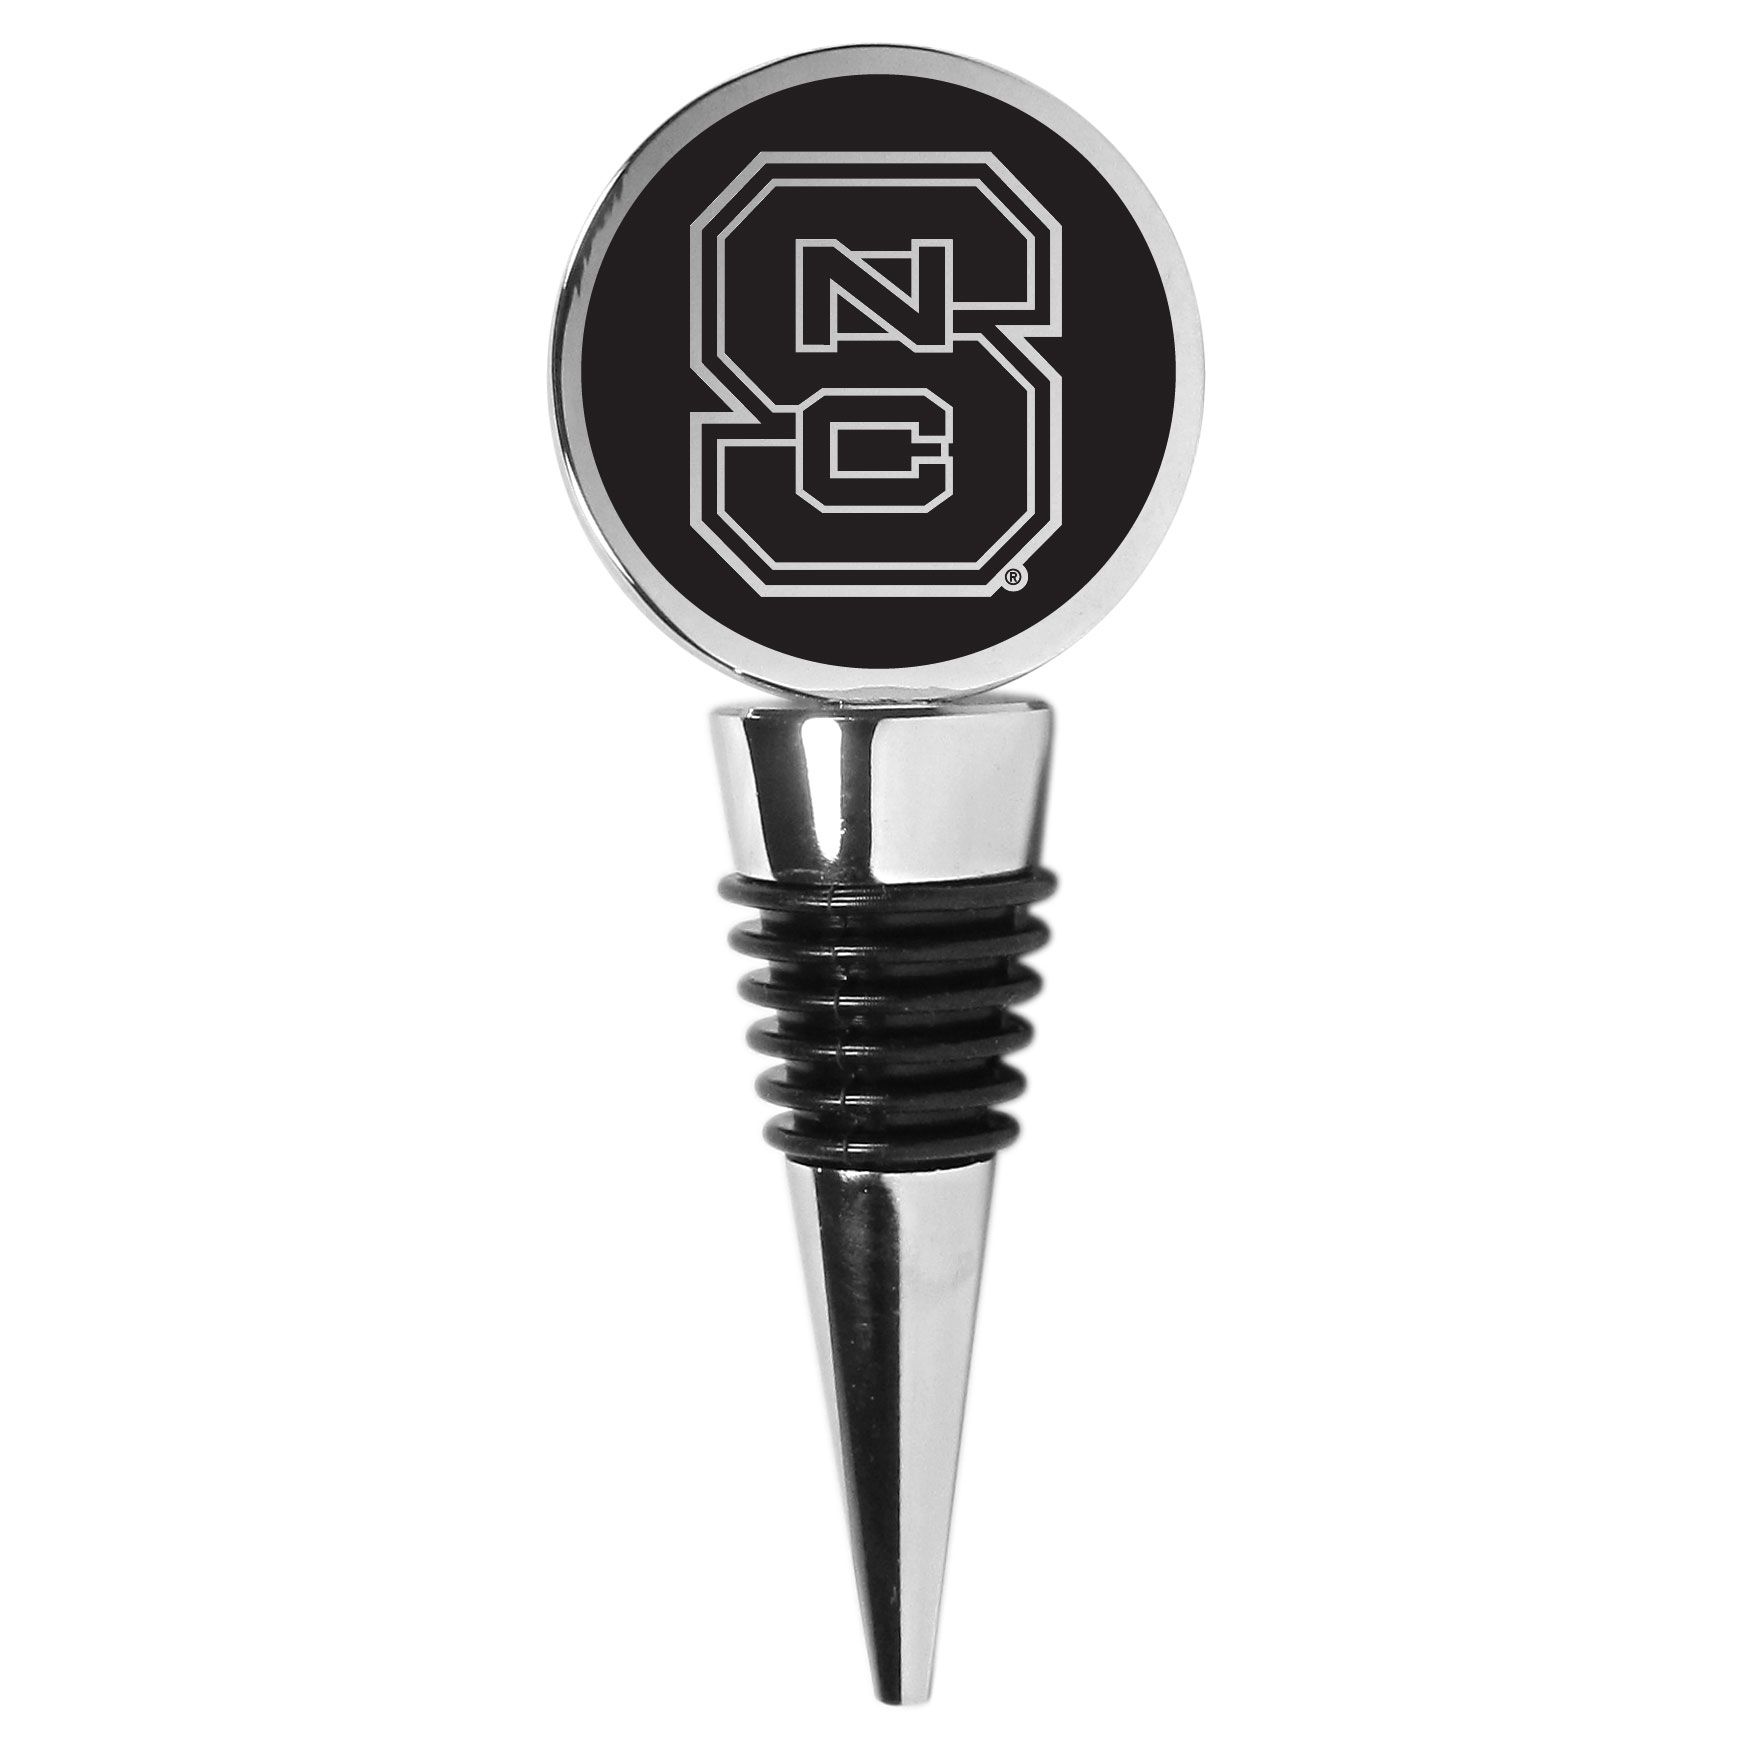 N. Carolina St. Wolfpack Wine Stopper - This beautiful N. Carolina St. Wolfpack wine stopper has a classy monochromatic logo on the top disc. The tapered rubber rings allow you to create a tight seal on multiple sizes of wine bottles so that you are able to preserve the wine for later enjoyment. This a perfect addition to a game day celebration.